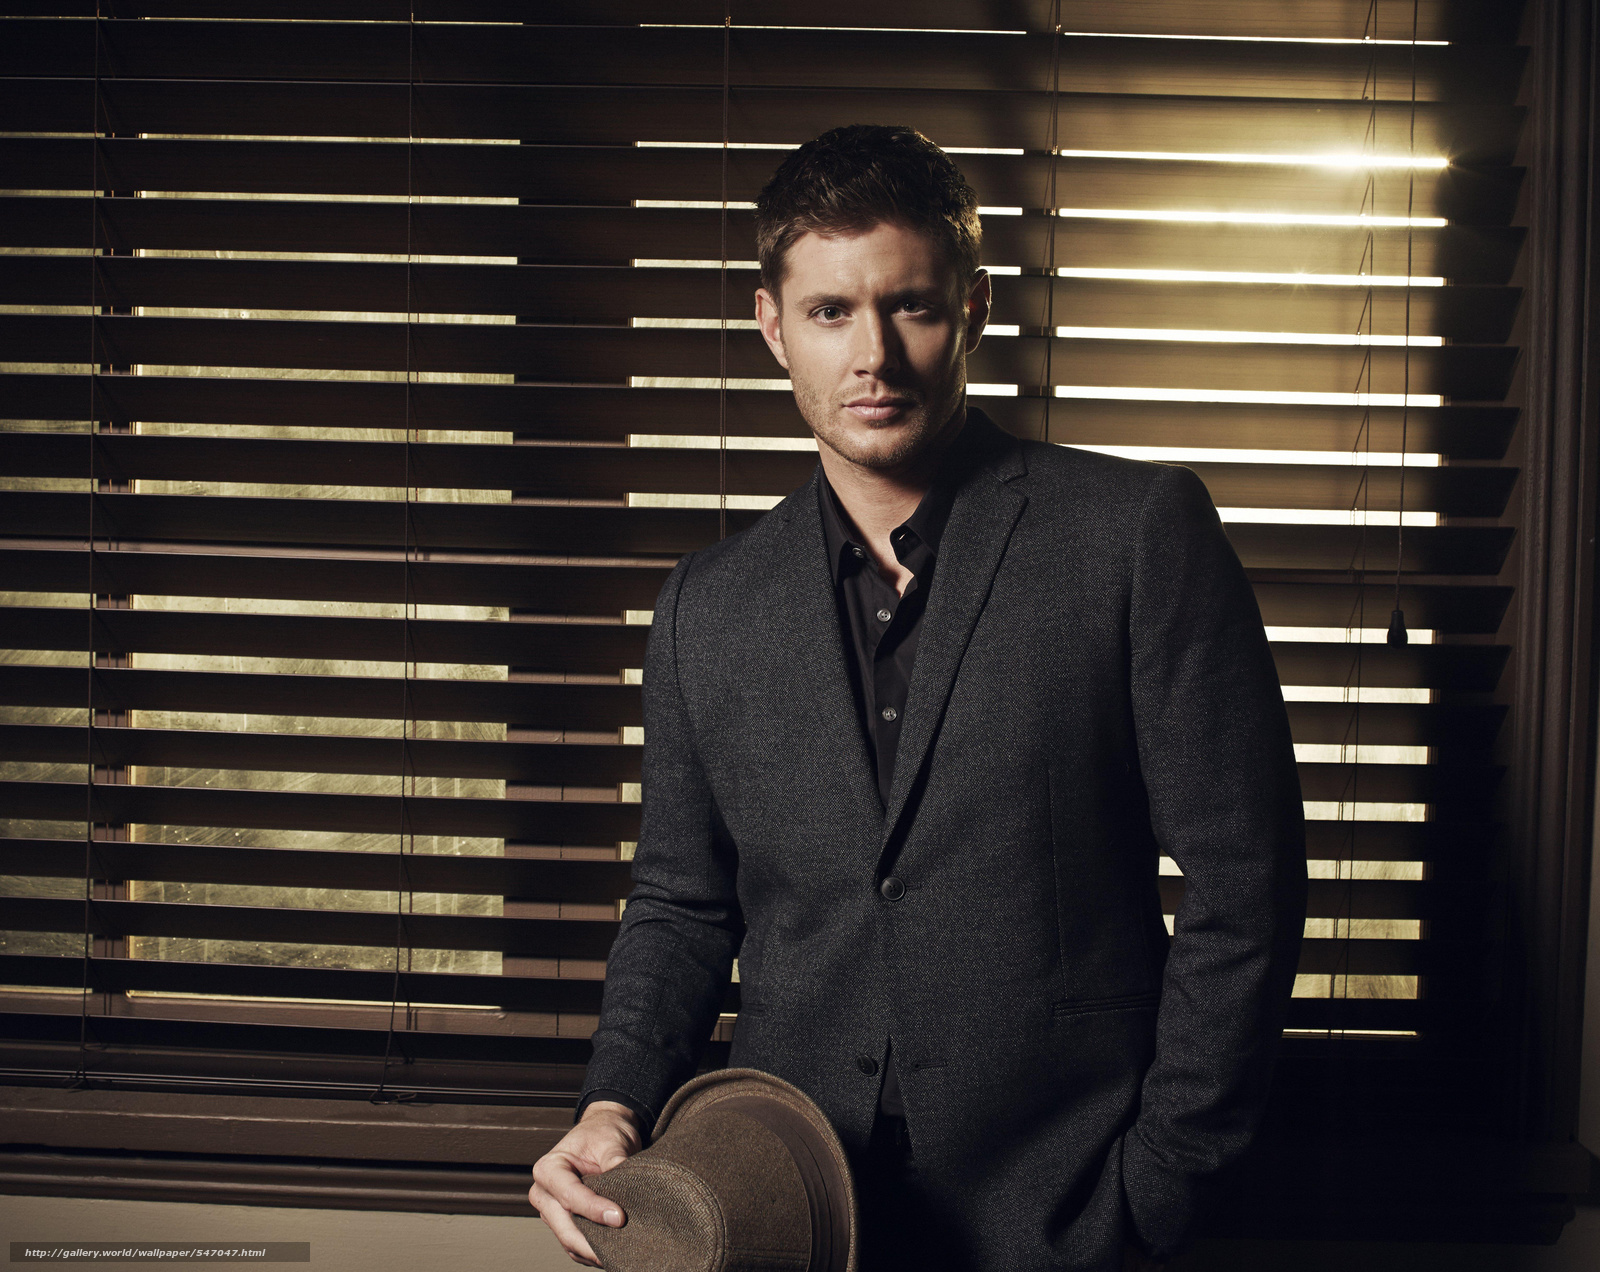 Download wallpaper Jensen Ackles,  Venetian blinds,  man,  suit free desktop wallpaper in the resolution 6128x4872 — picture №547047